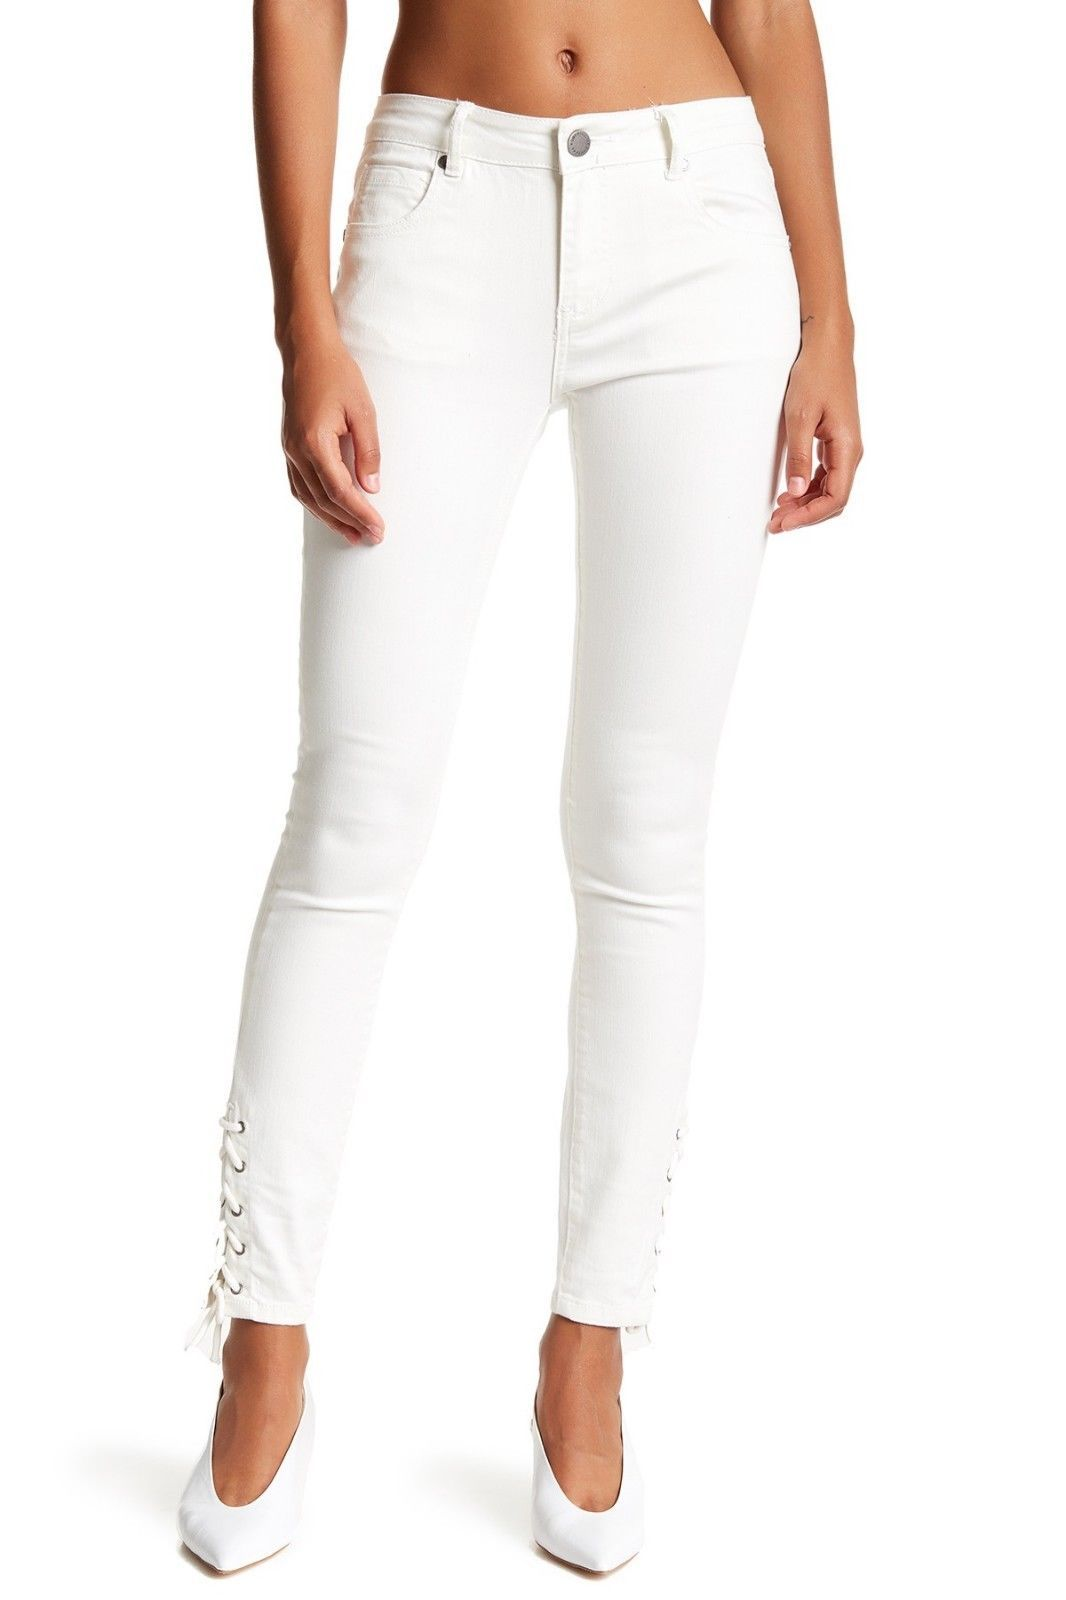 Primary image for Romeo & Juliet Couture Lace-Up Skinny Jeans OYSTER COLOR SIZE MEDIUM MSRP$155.00